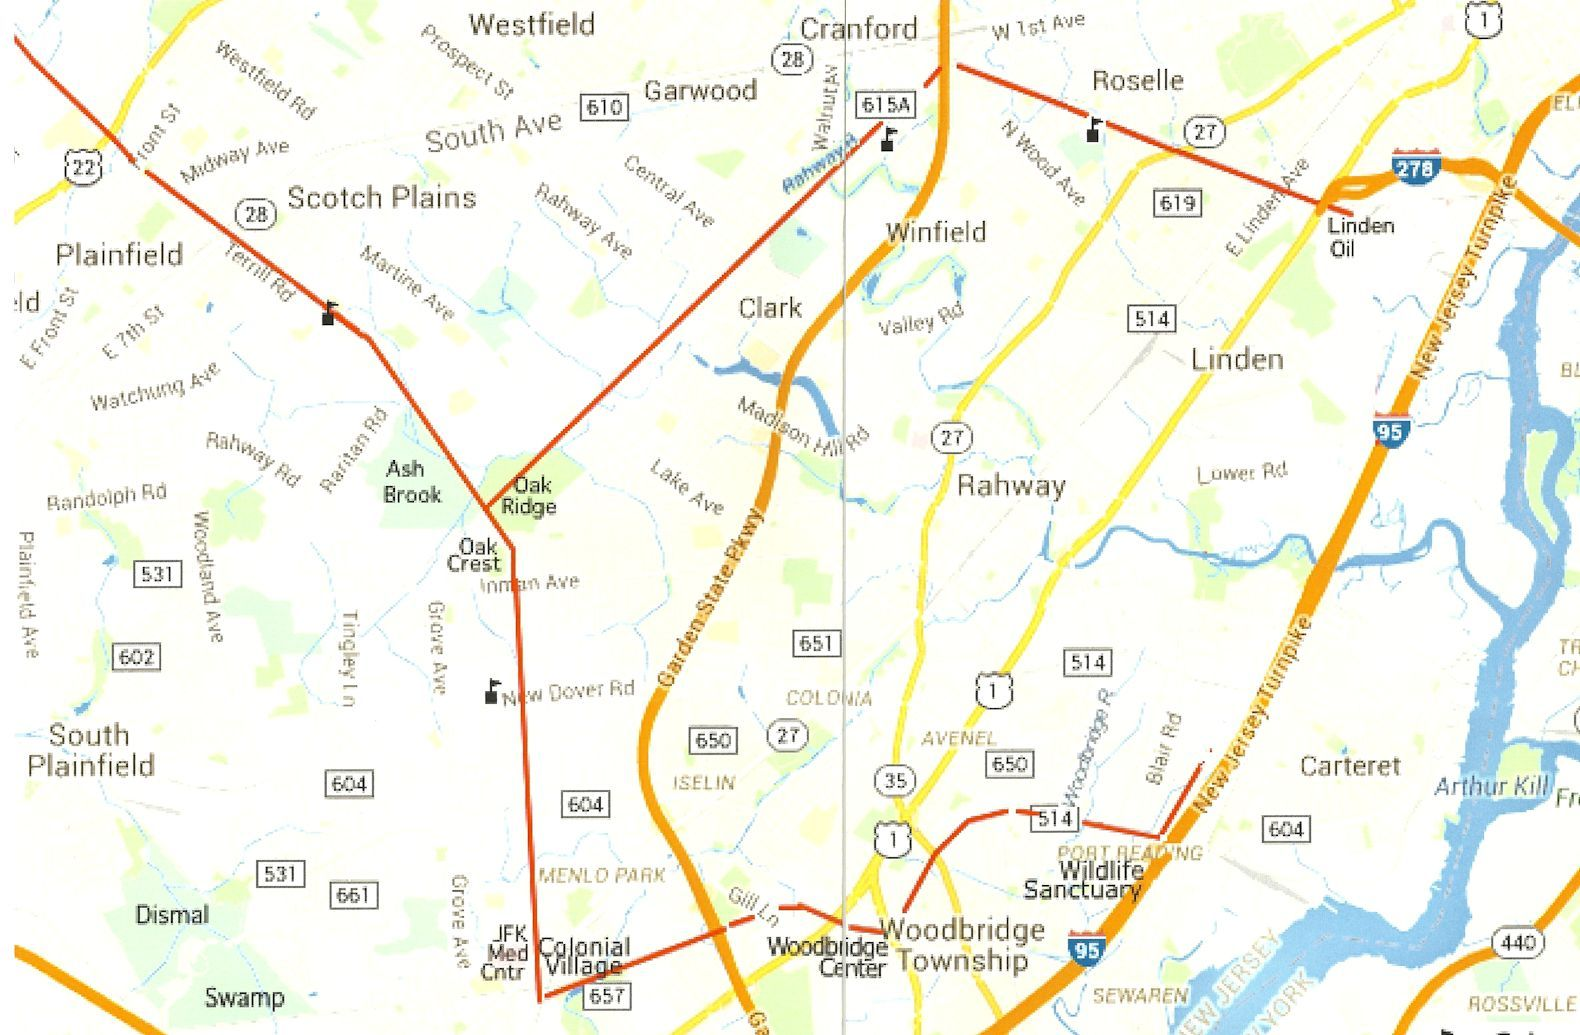 roselle nj map with Clark Environmental  Mission Votes In Oppositio on Fort Smith Ar purzuit moreover Linden besides 233120 likewise Map Of Union County New Jersey additionally Service area.